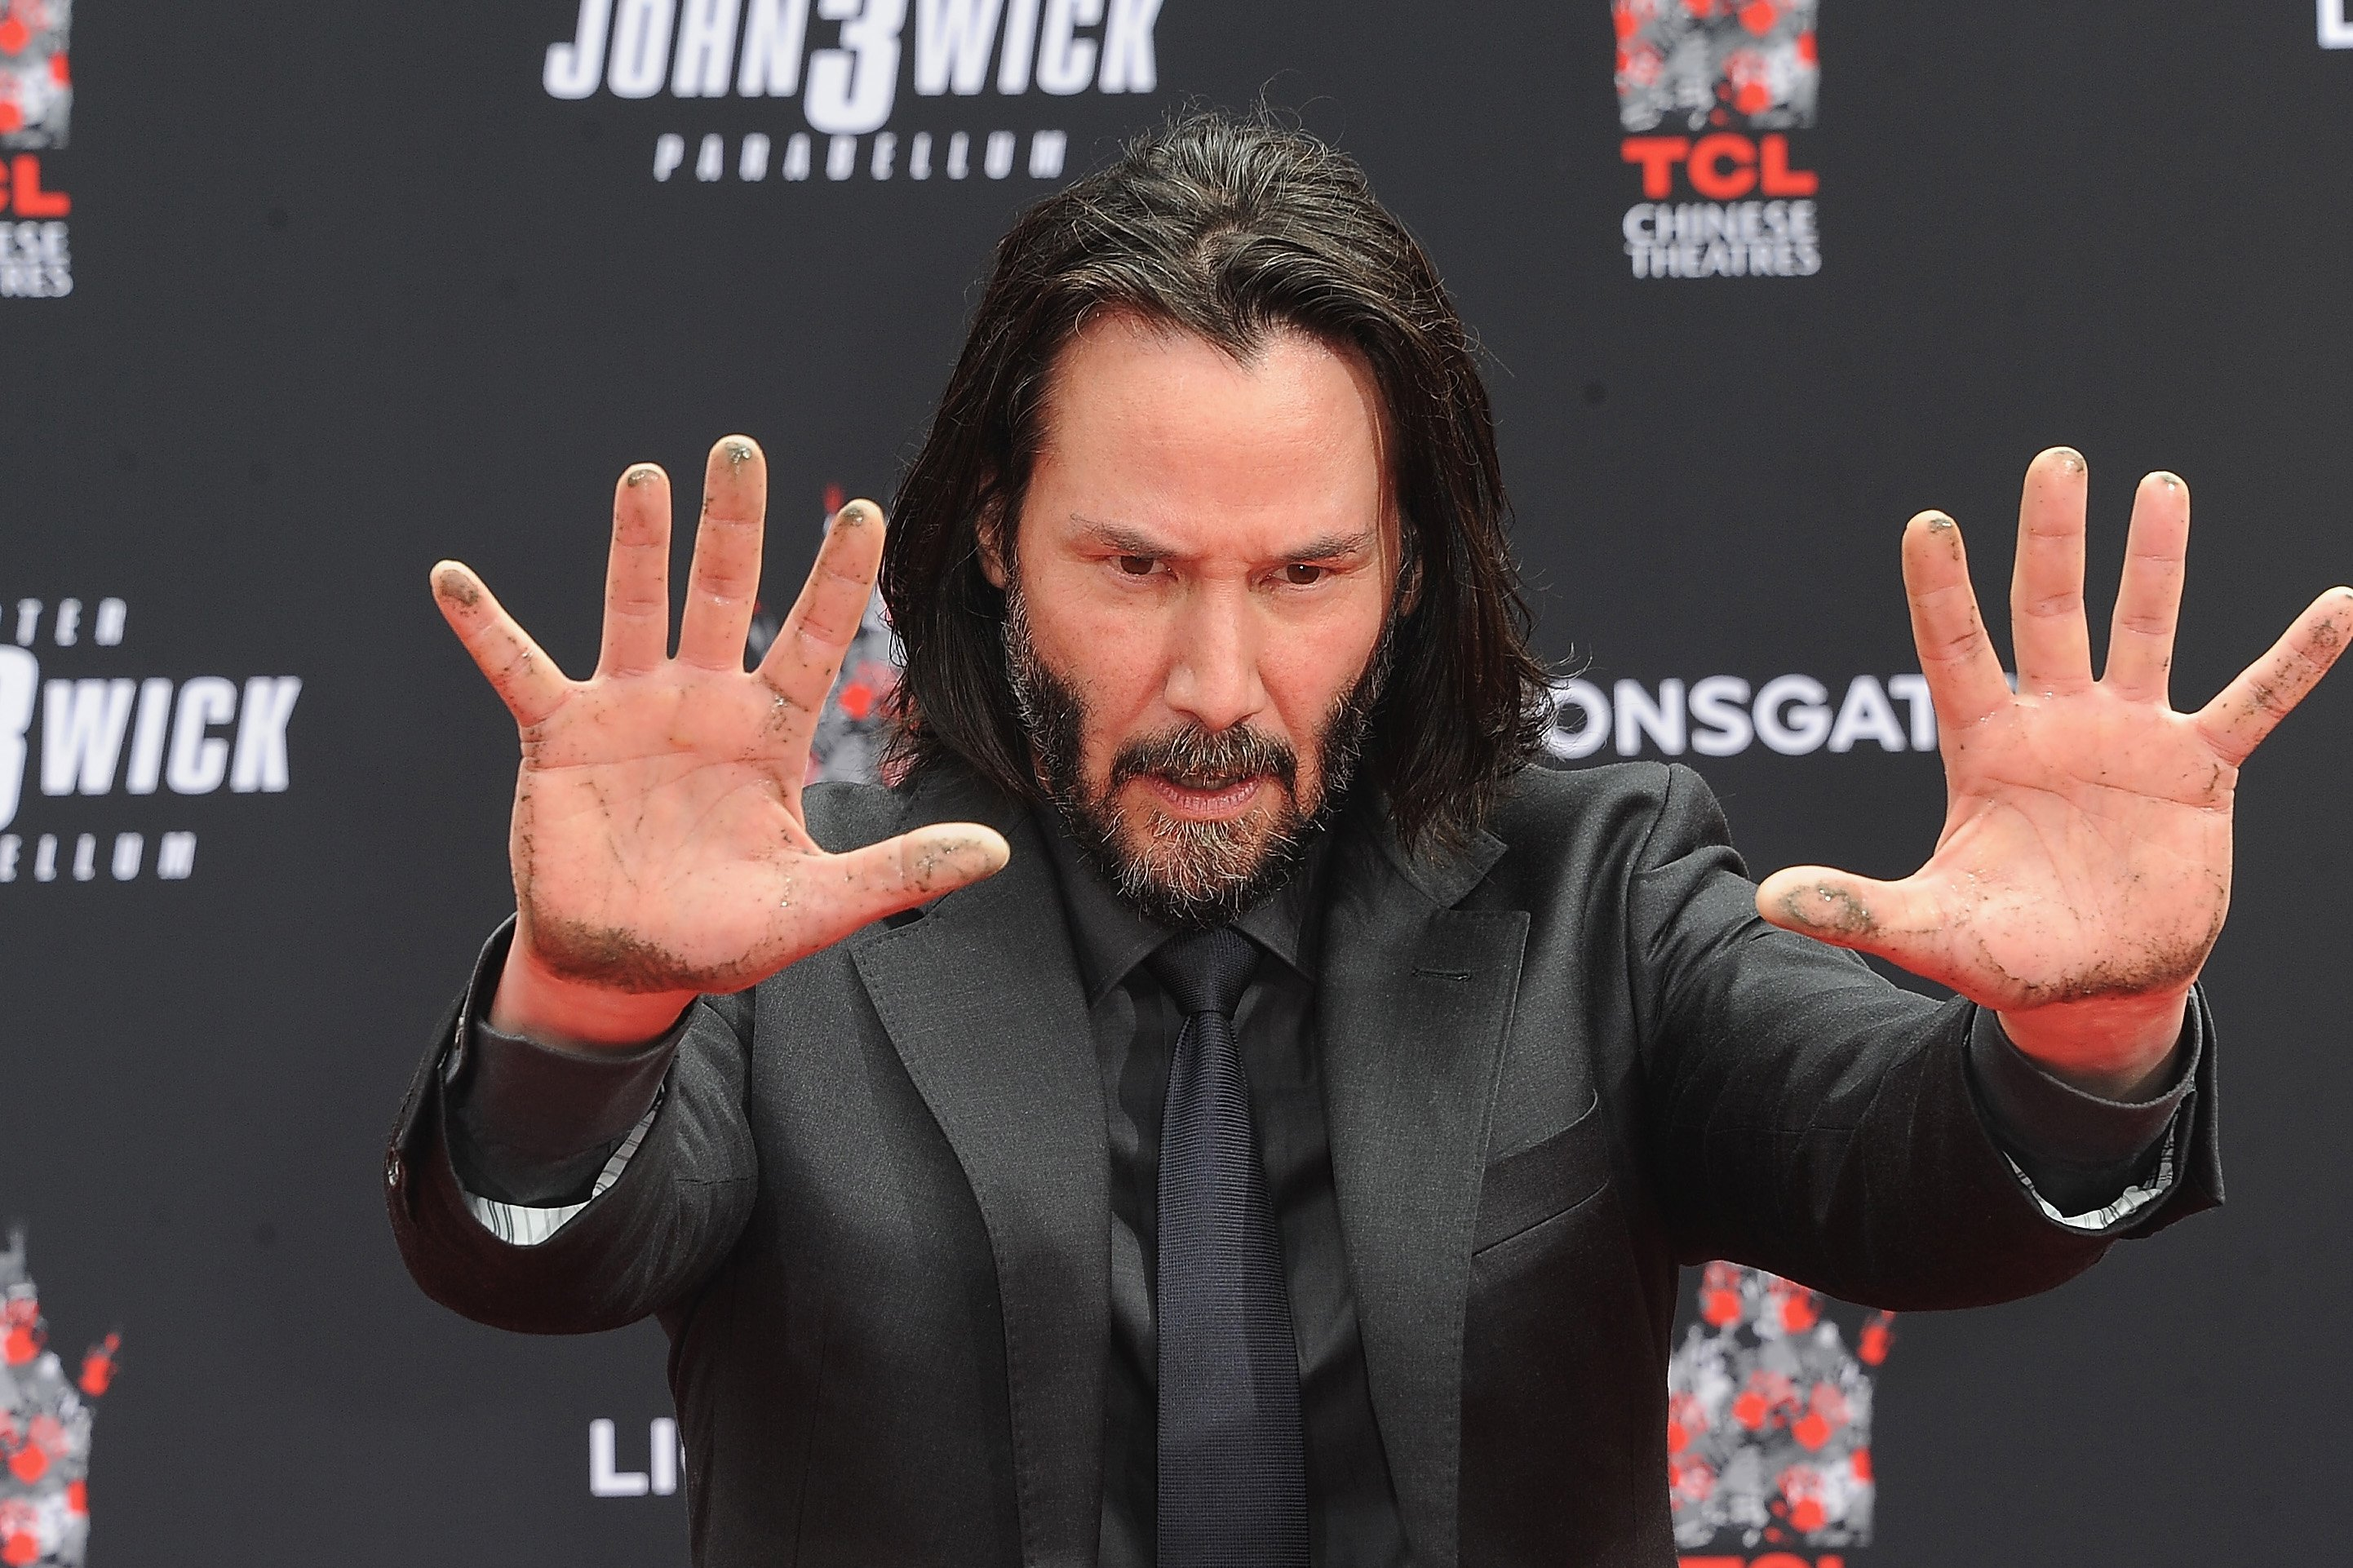 Image Credits: Getty Images | Keanu is a firm believer